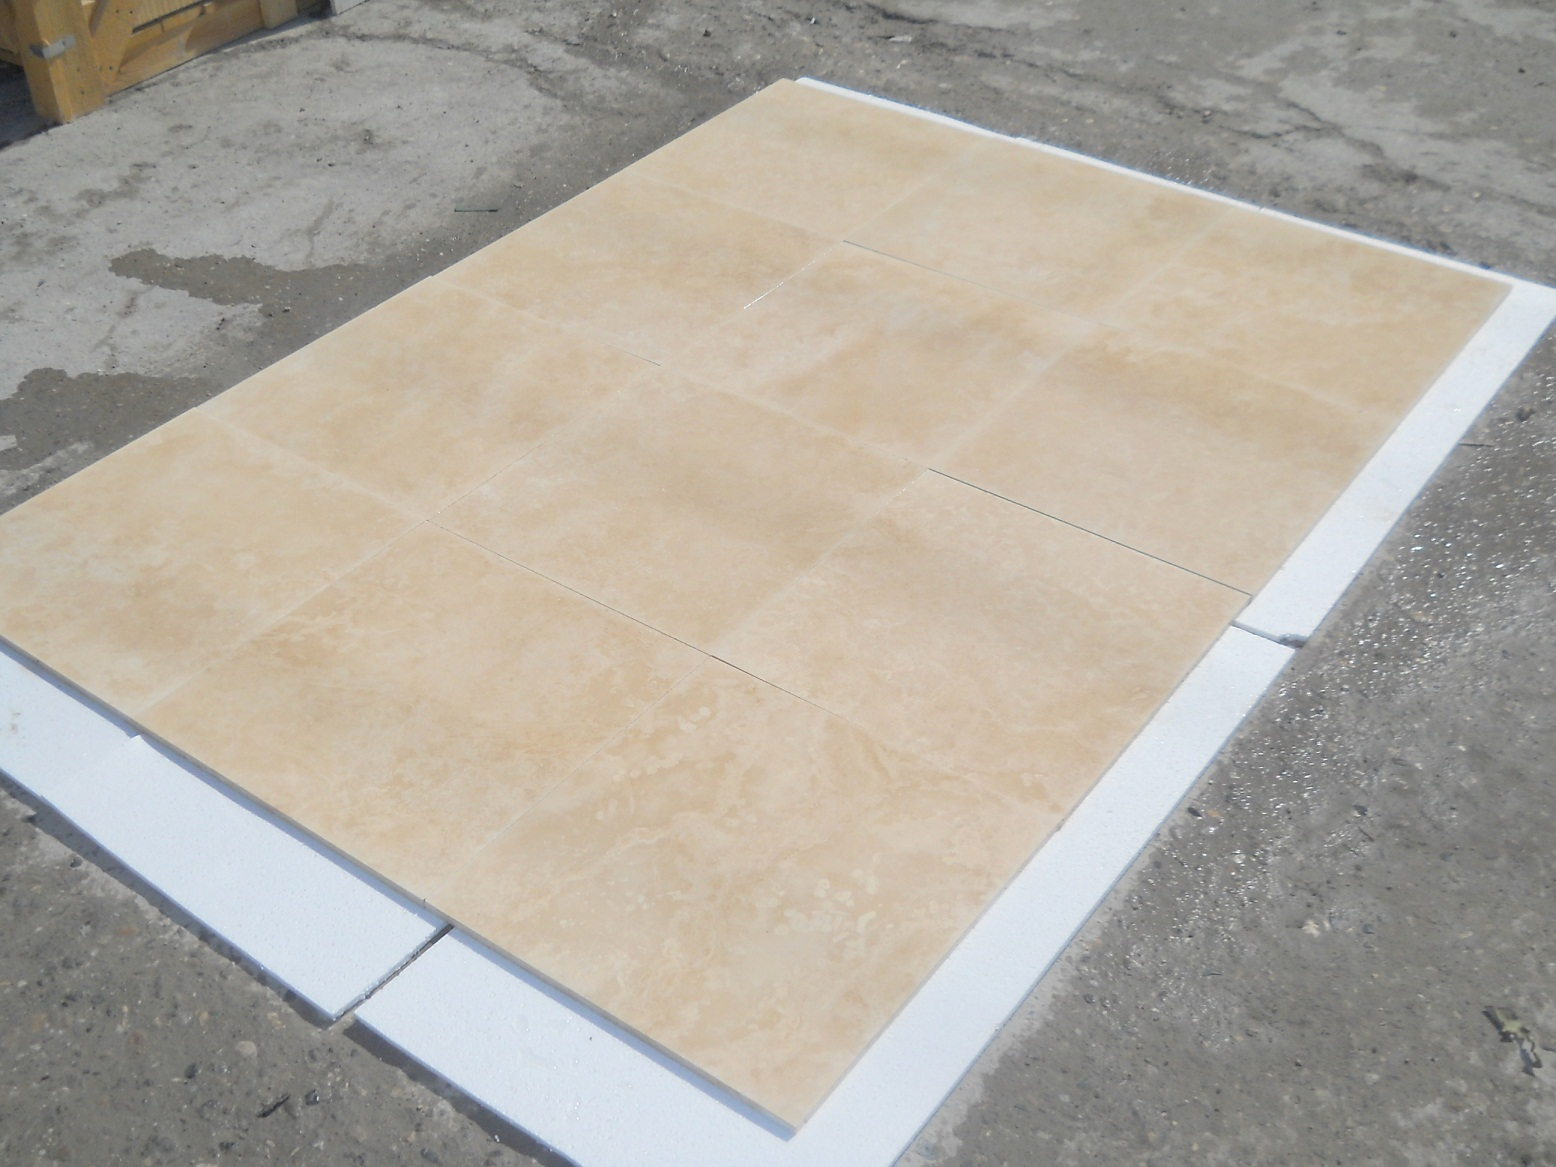 Ivory Light Filled&Honed Travertine